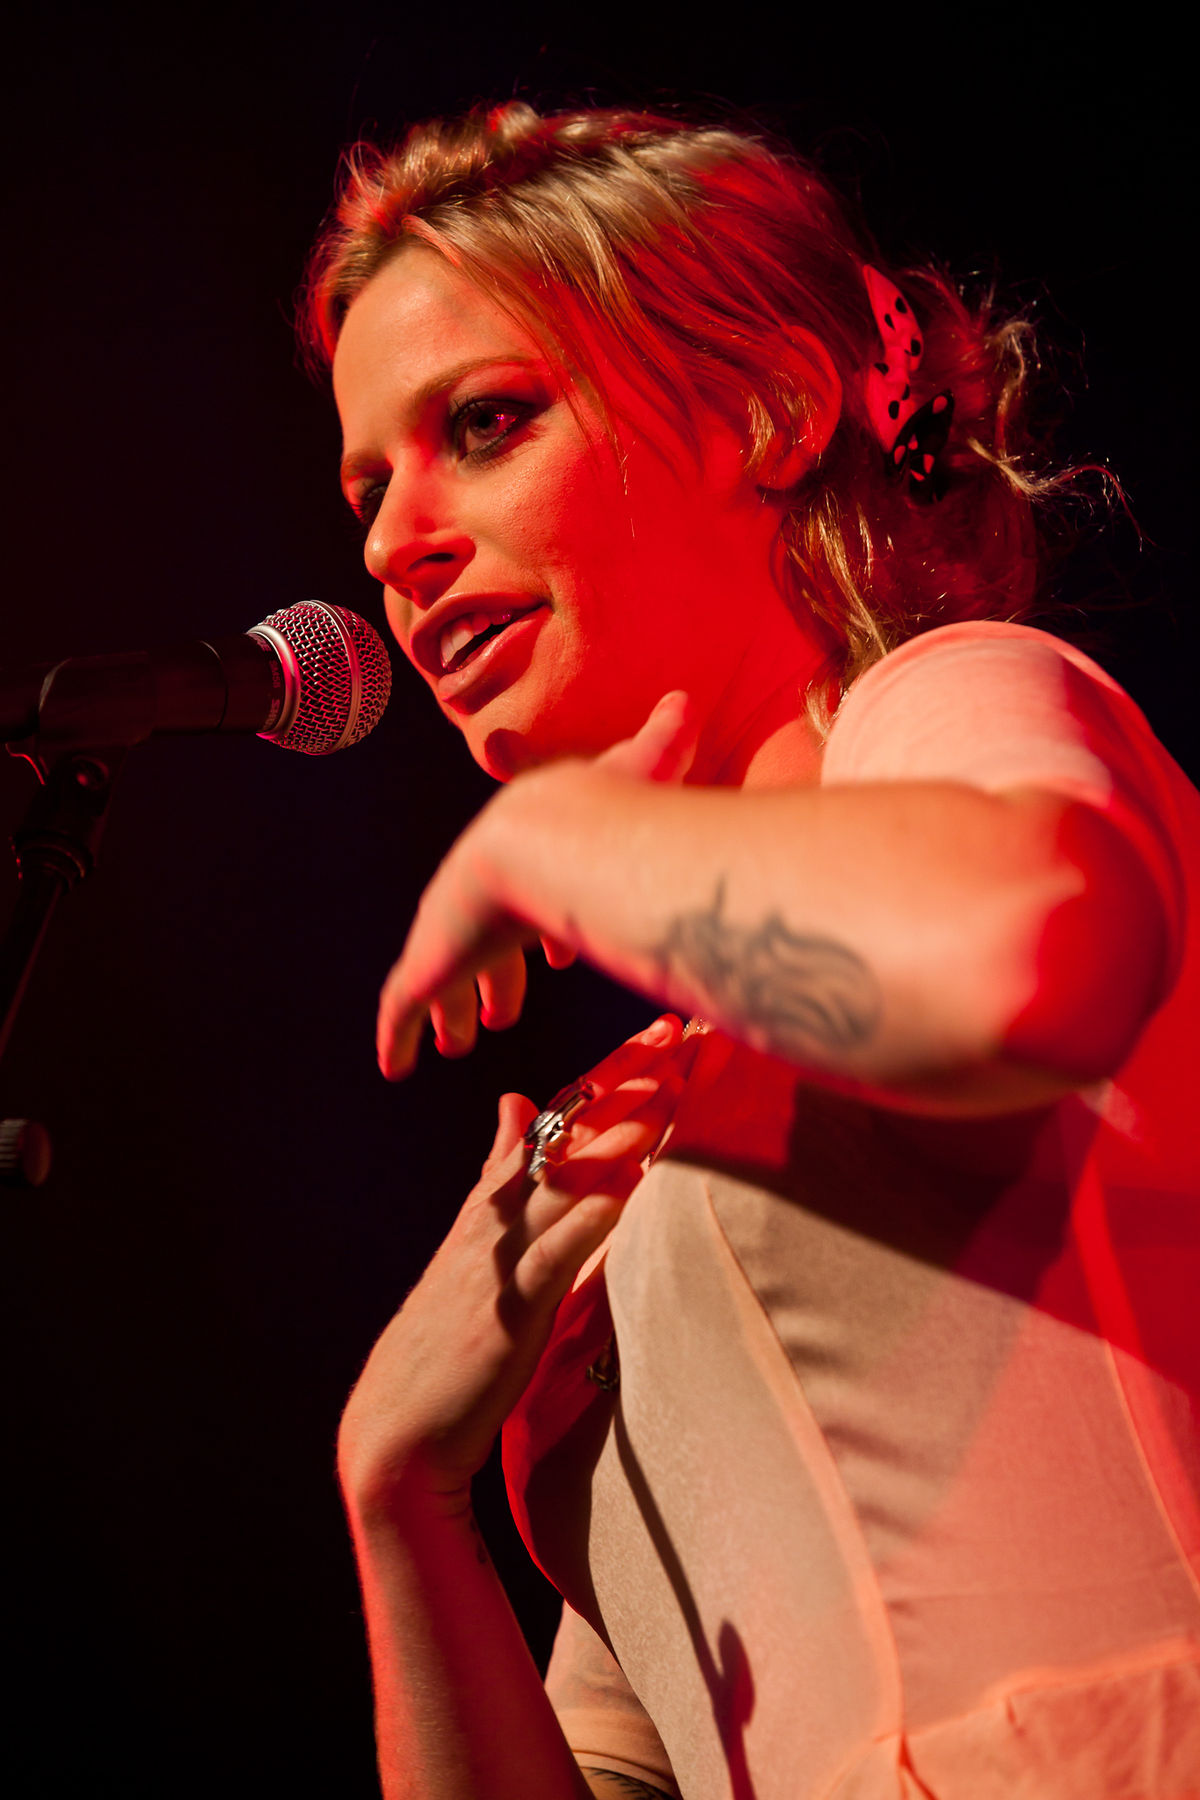 gin wigmore wikipédia  gin wigmore holding on to hell adobe.php #7